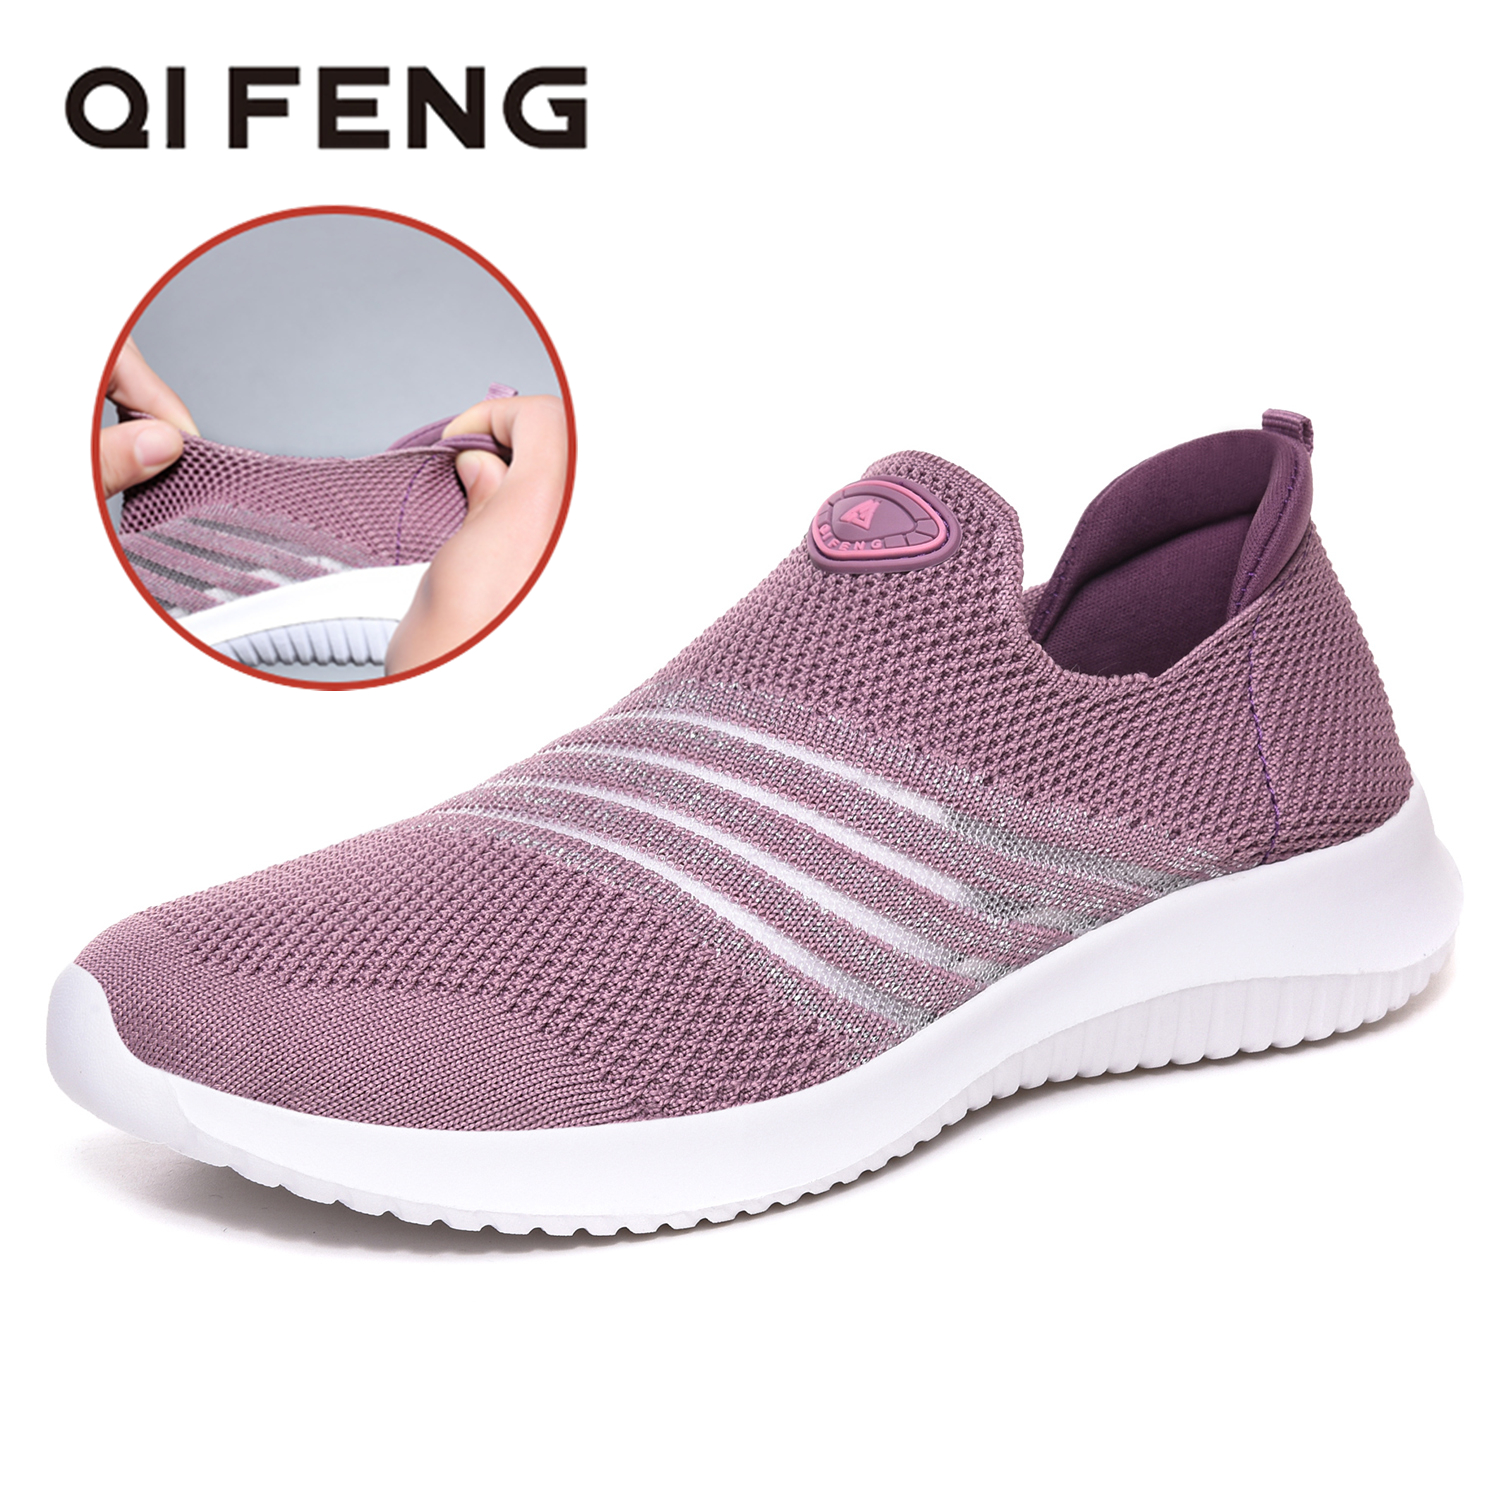 Running Shoes Woman Spring Fashion Ladies Sport Shoes Light Summer Brand Off White Mesh Sneaker Korean Shoes Breatheable Female